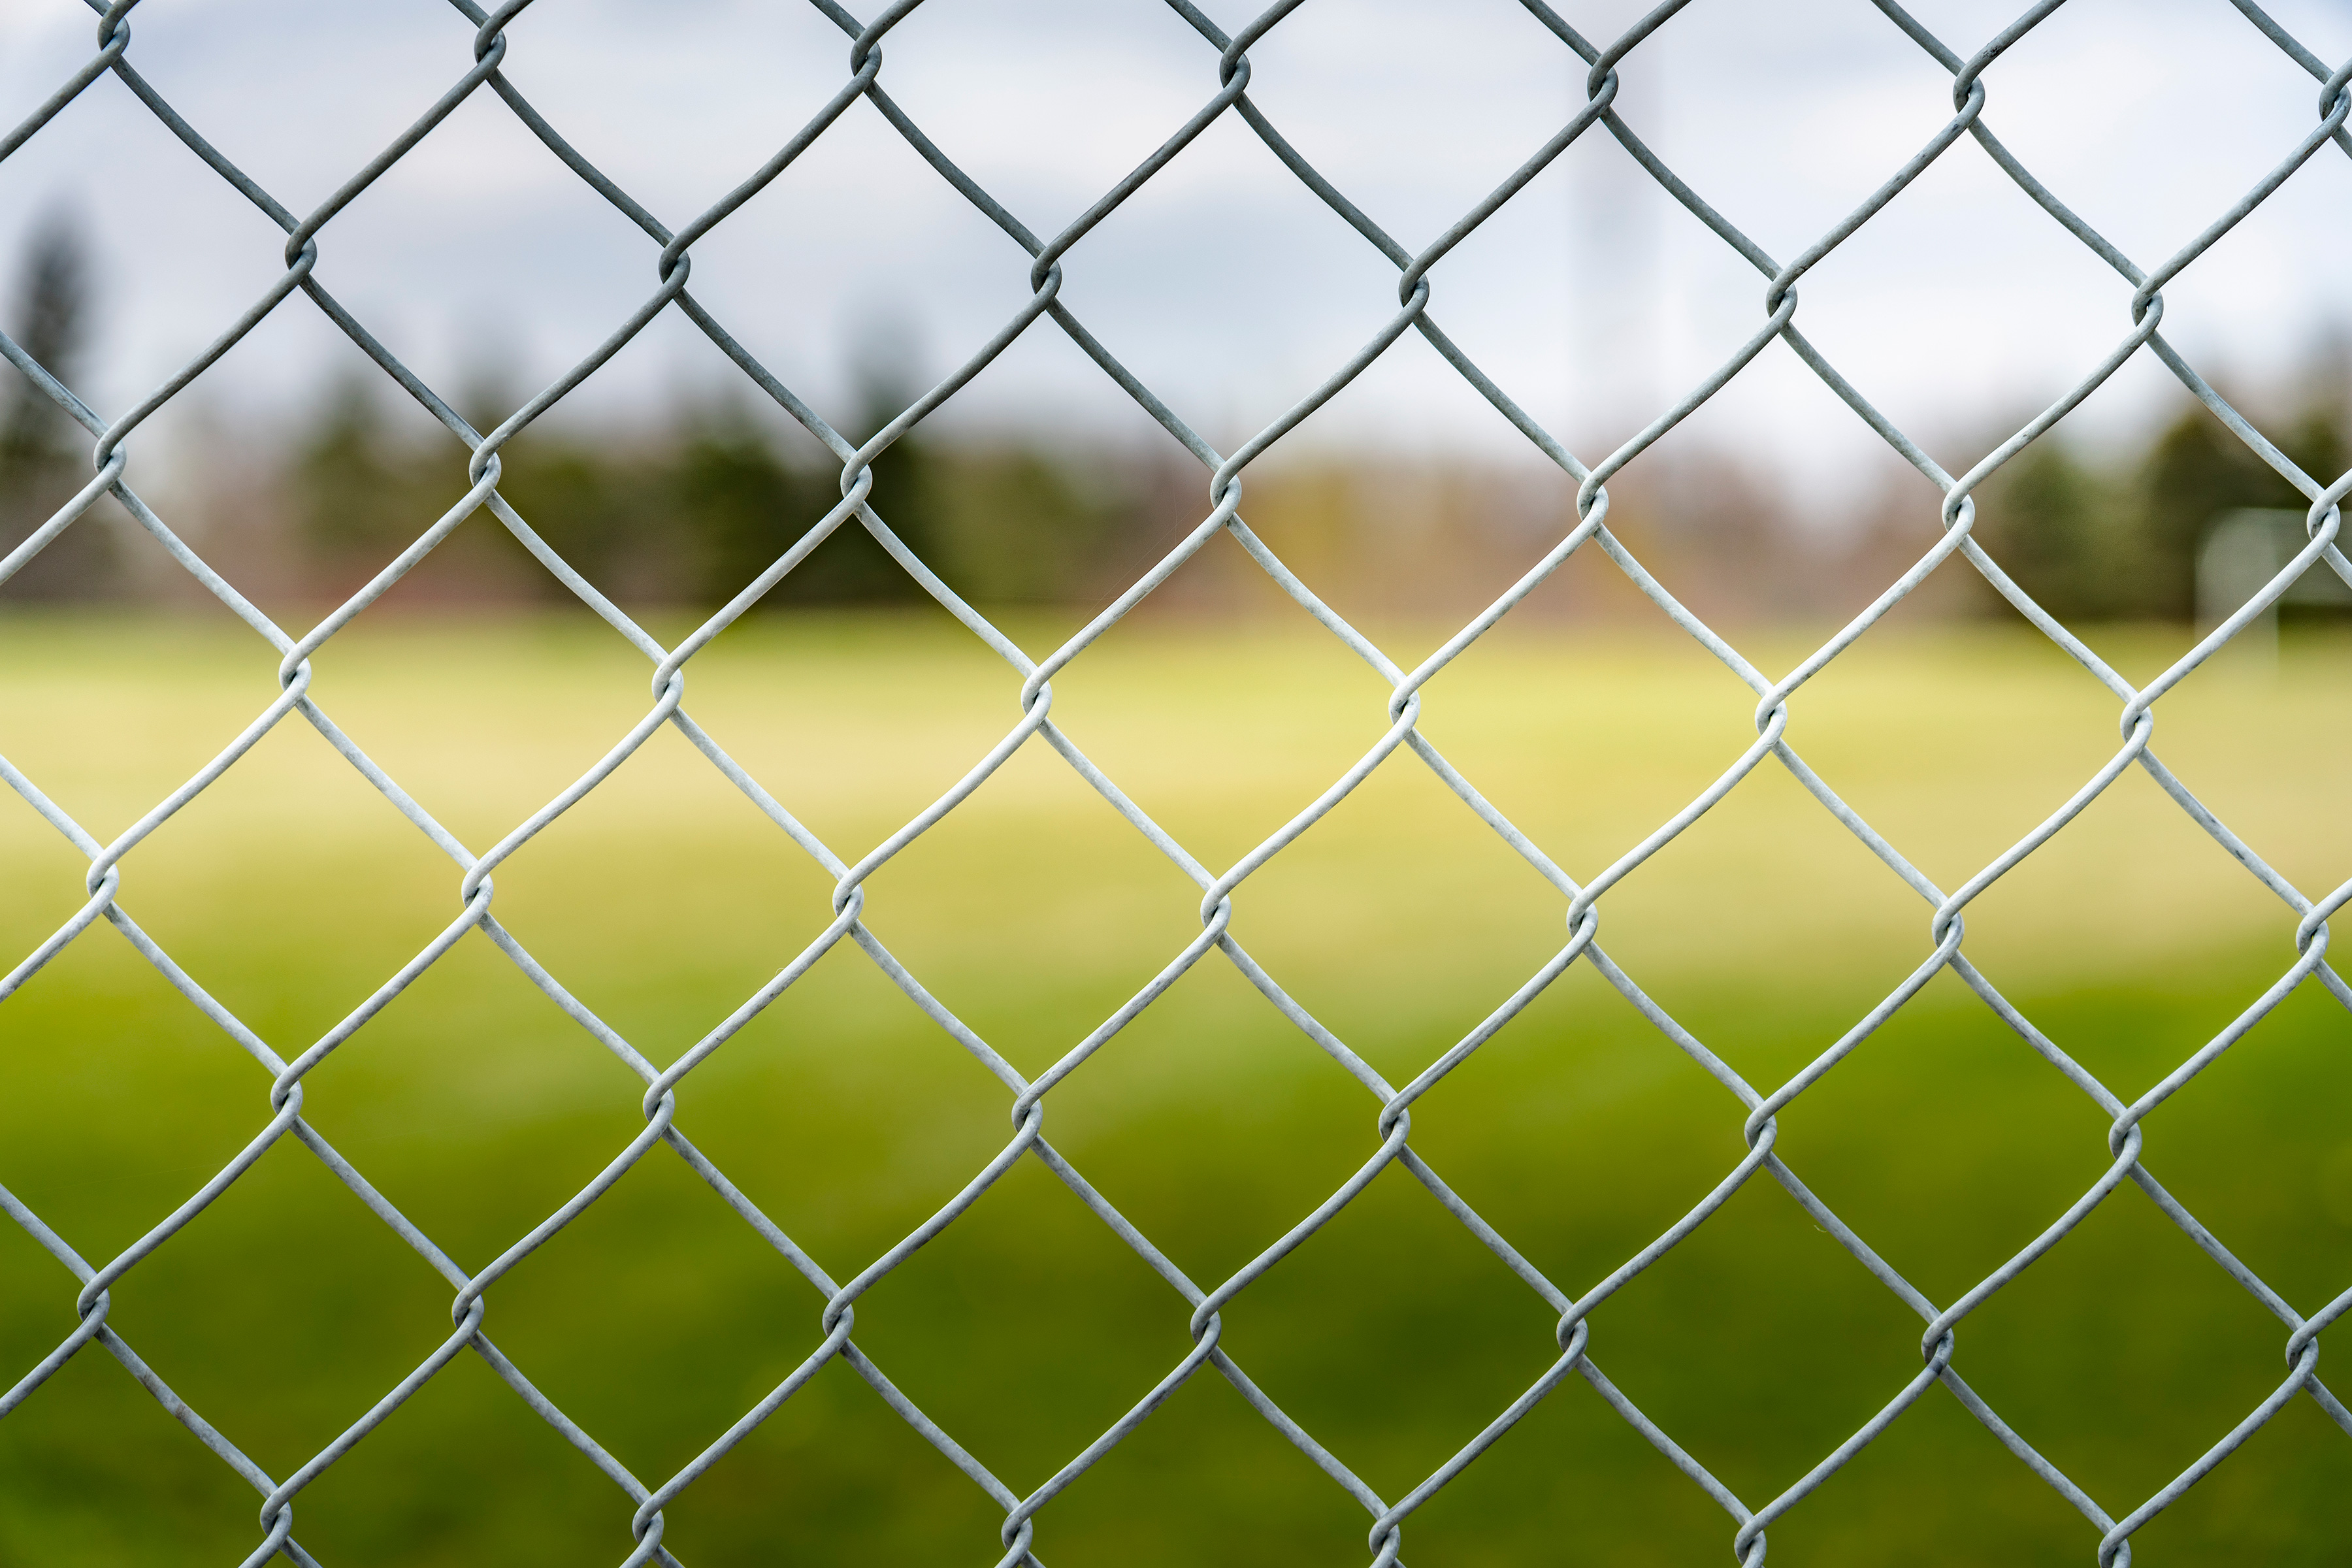 Looking through a chain link fence onto an open field.